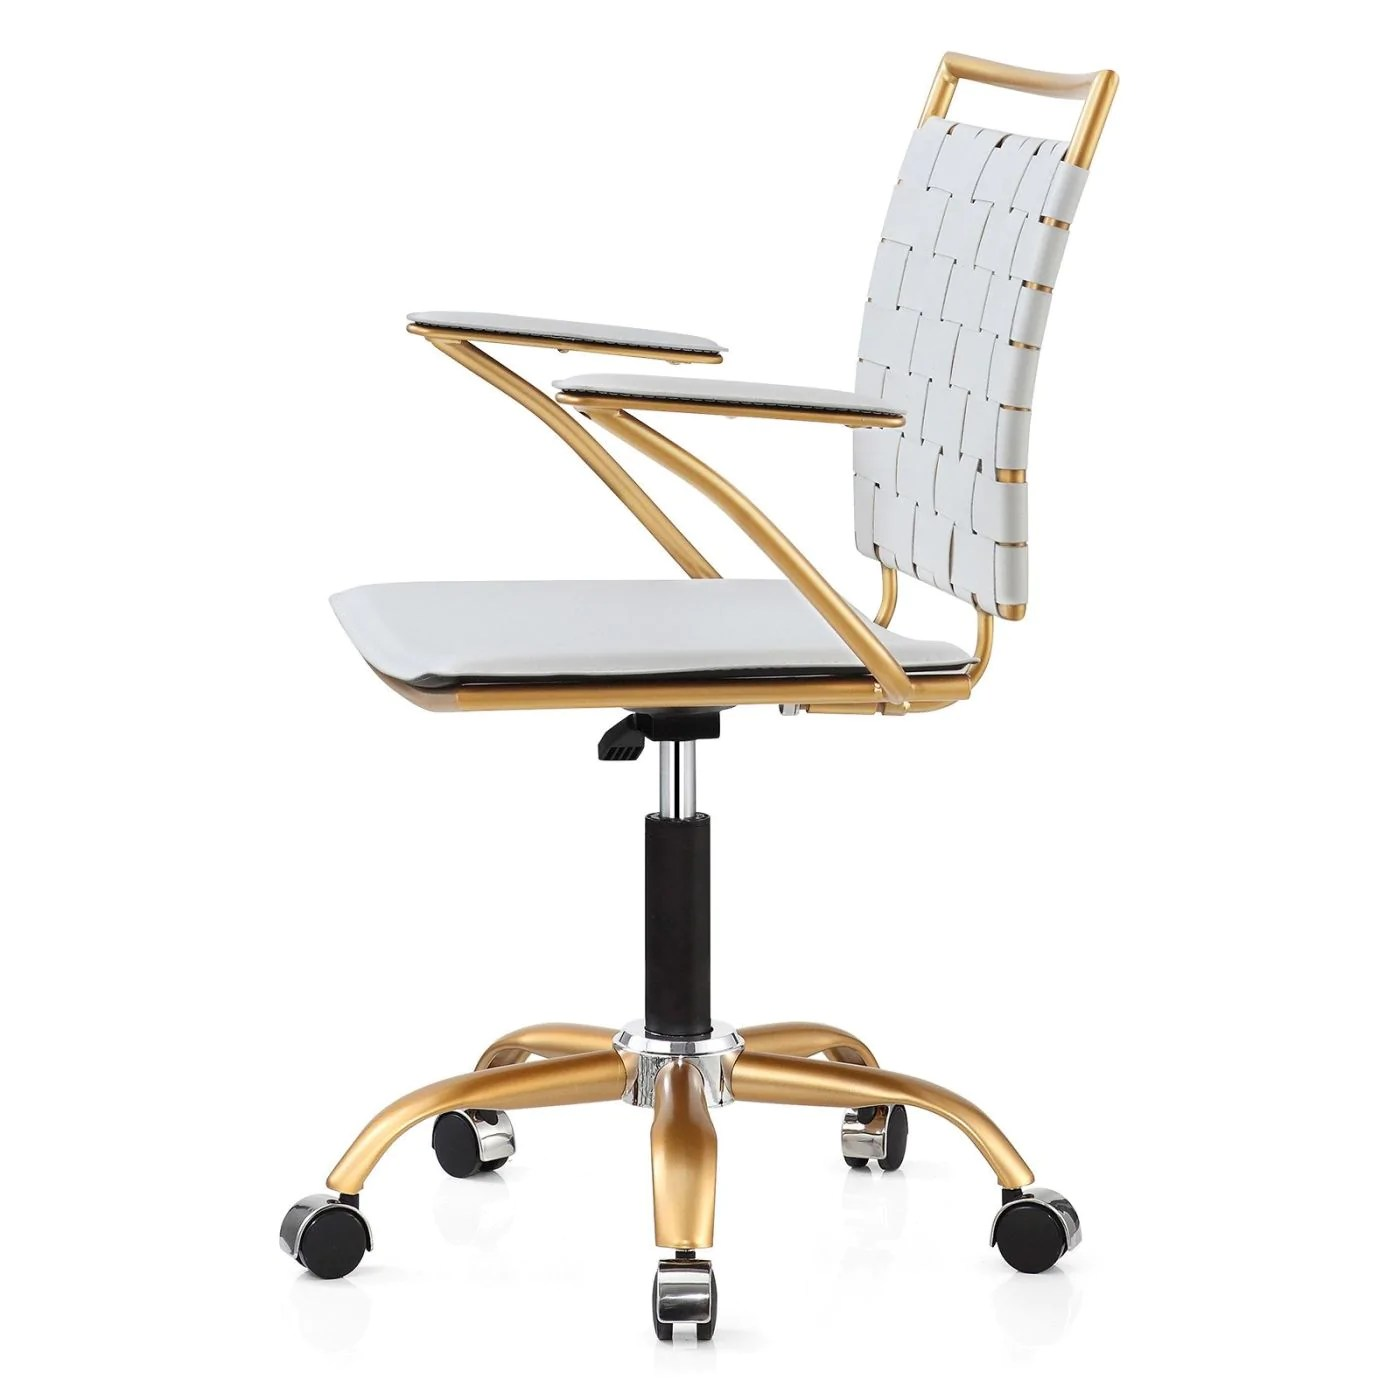 White And Gold Desk Chair Amazing Deal On Meelano 356 Gd Whi Office Chair In Gold